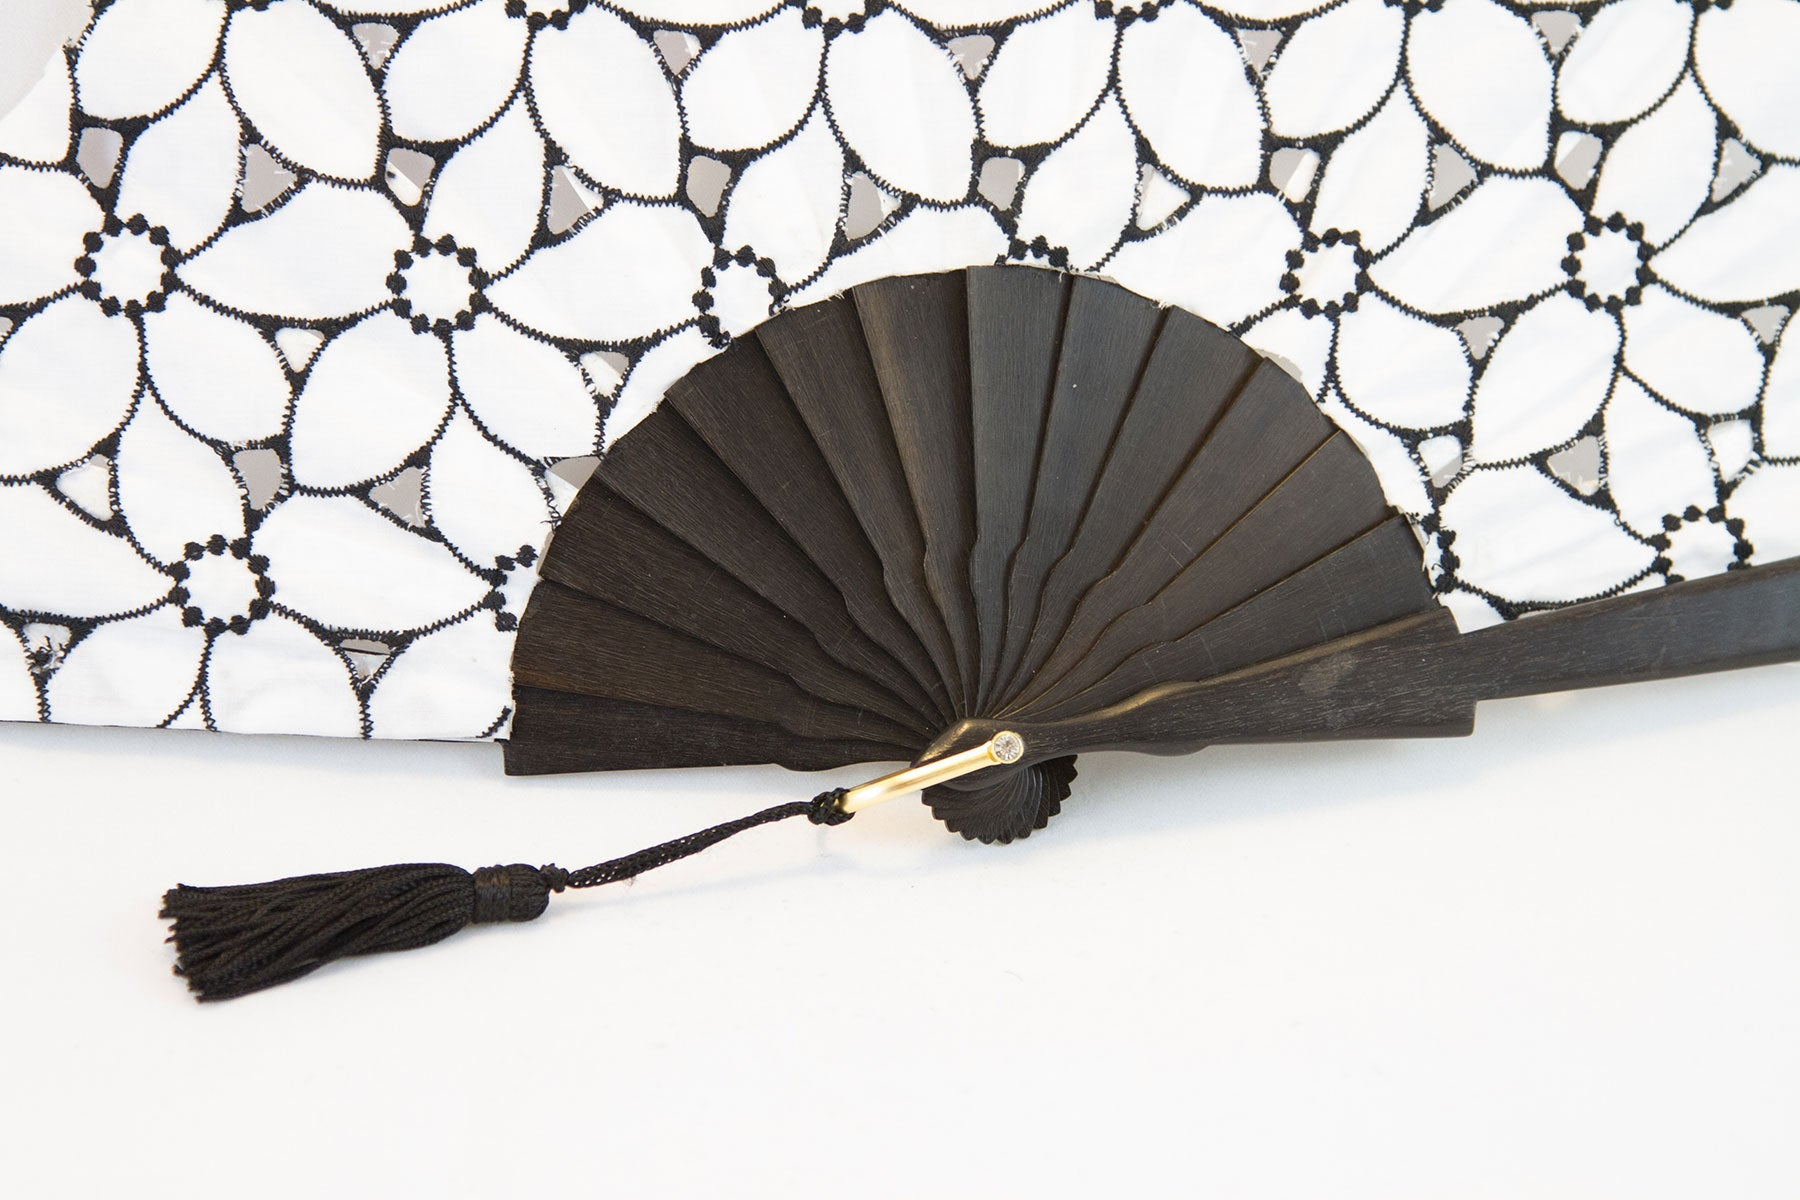 Limoges - Beautiful handmade white and black cotton open work fan detail